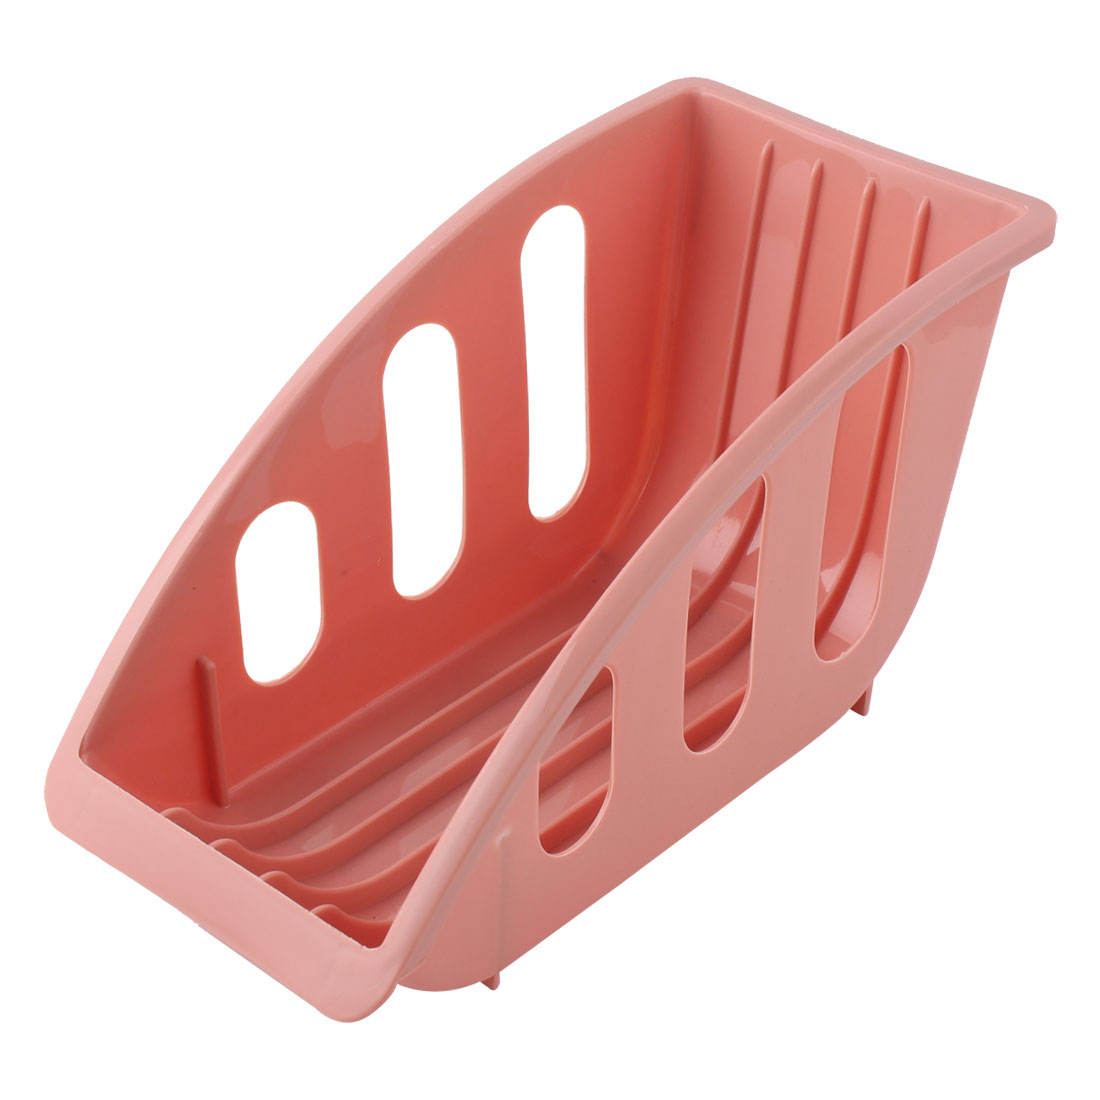 Household Kitchenware Plastic Dish Bowl Storage Drying Drainer Rack Holder Coral Pink